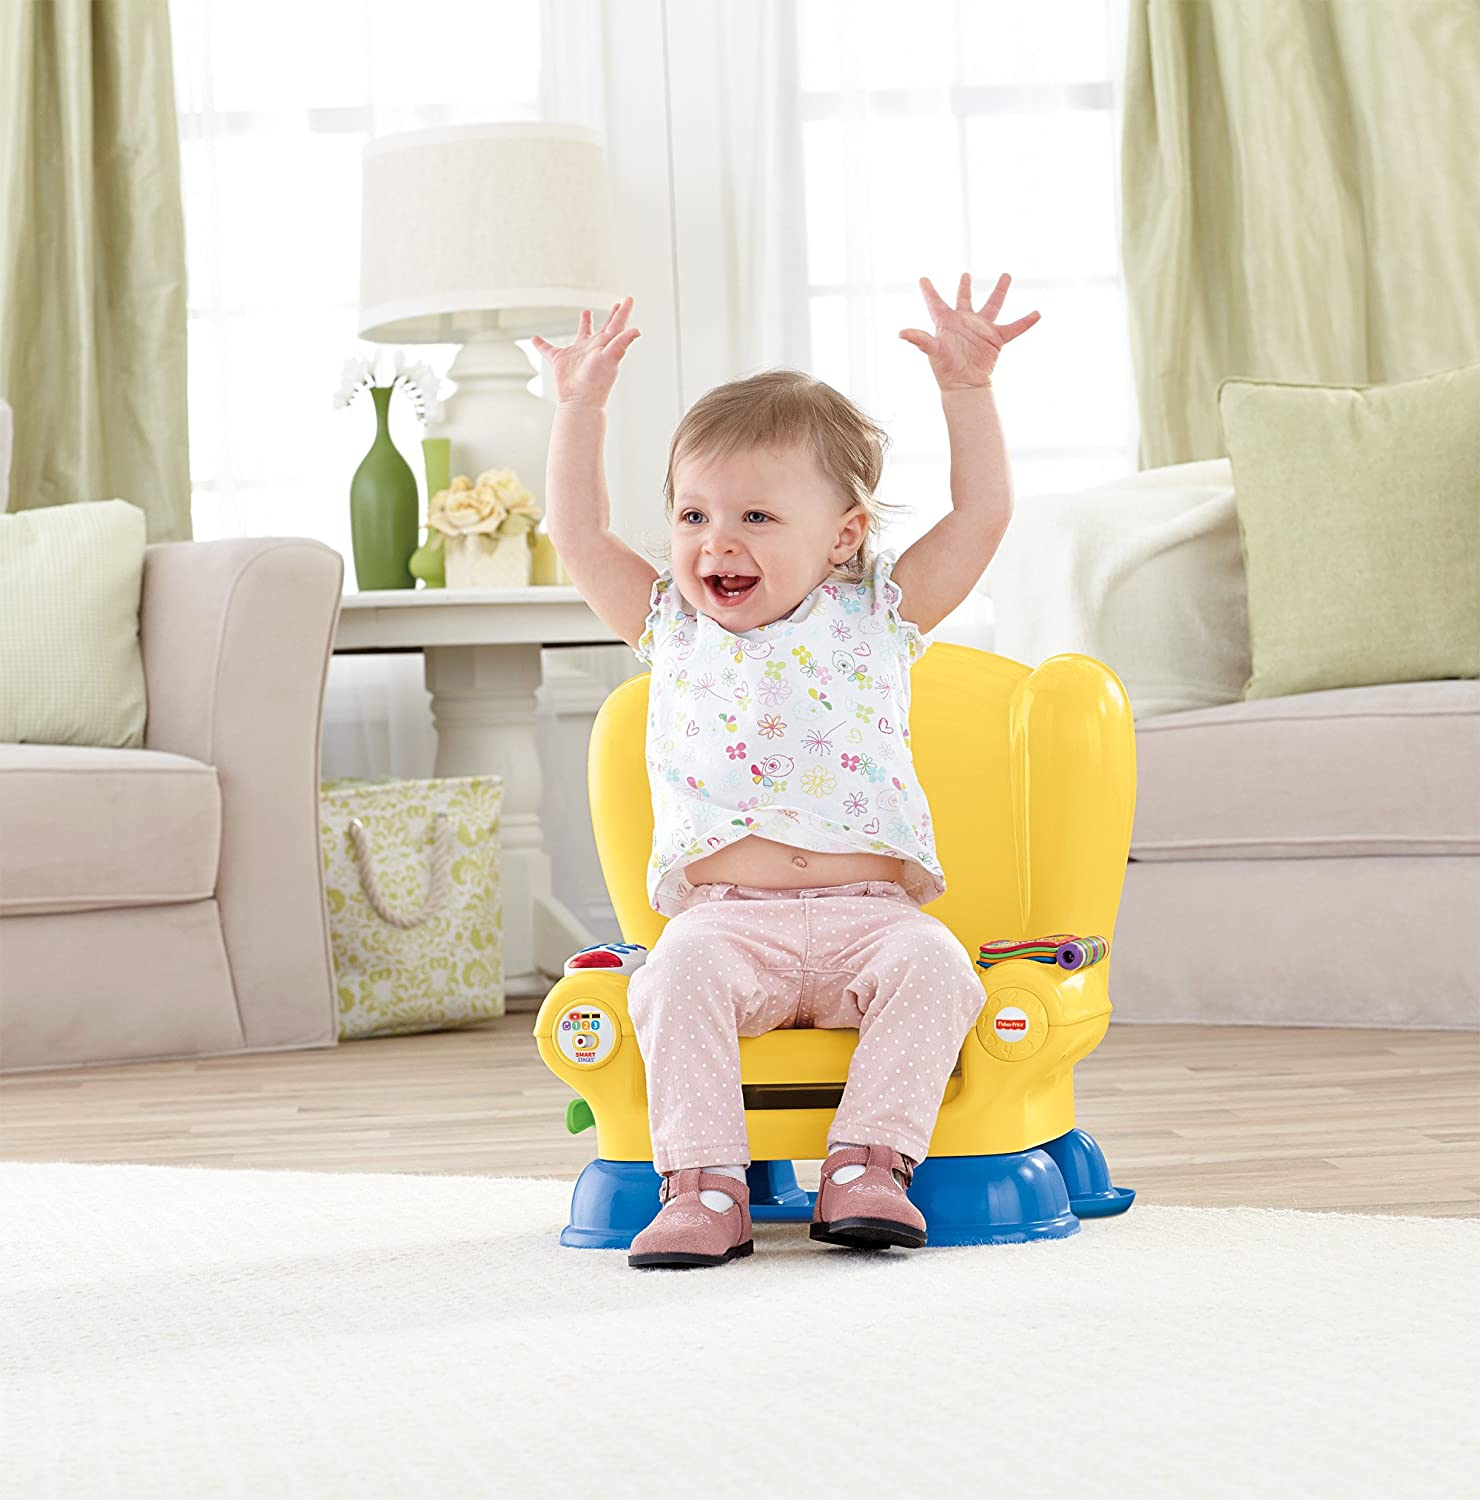 Fisher Price Laugh & Learn Smart Stages Chair Amazon Toys & Games